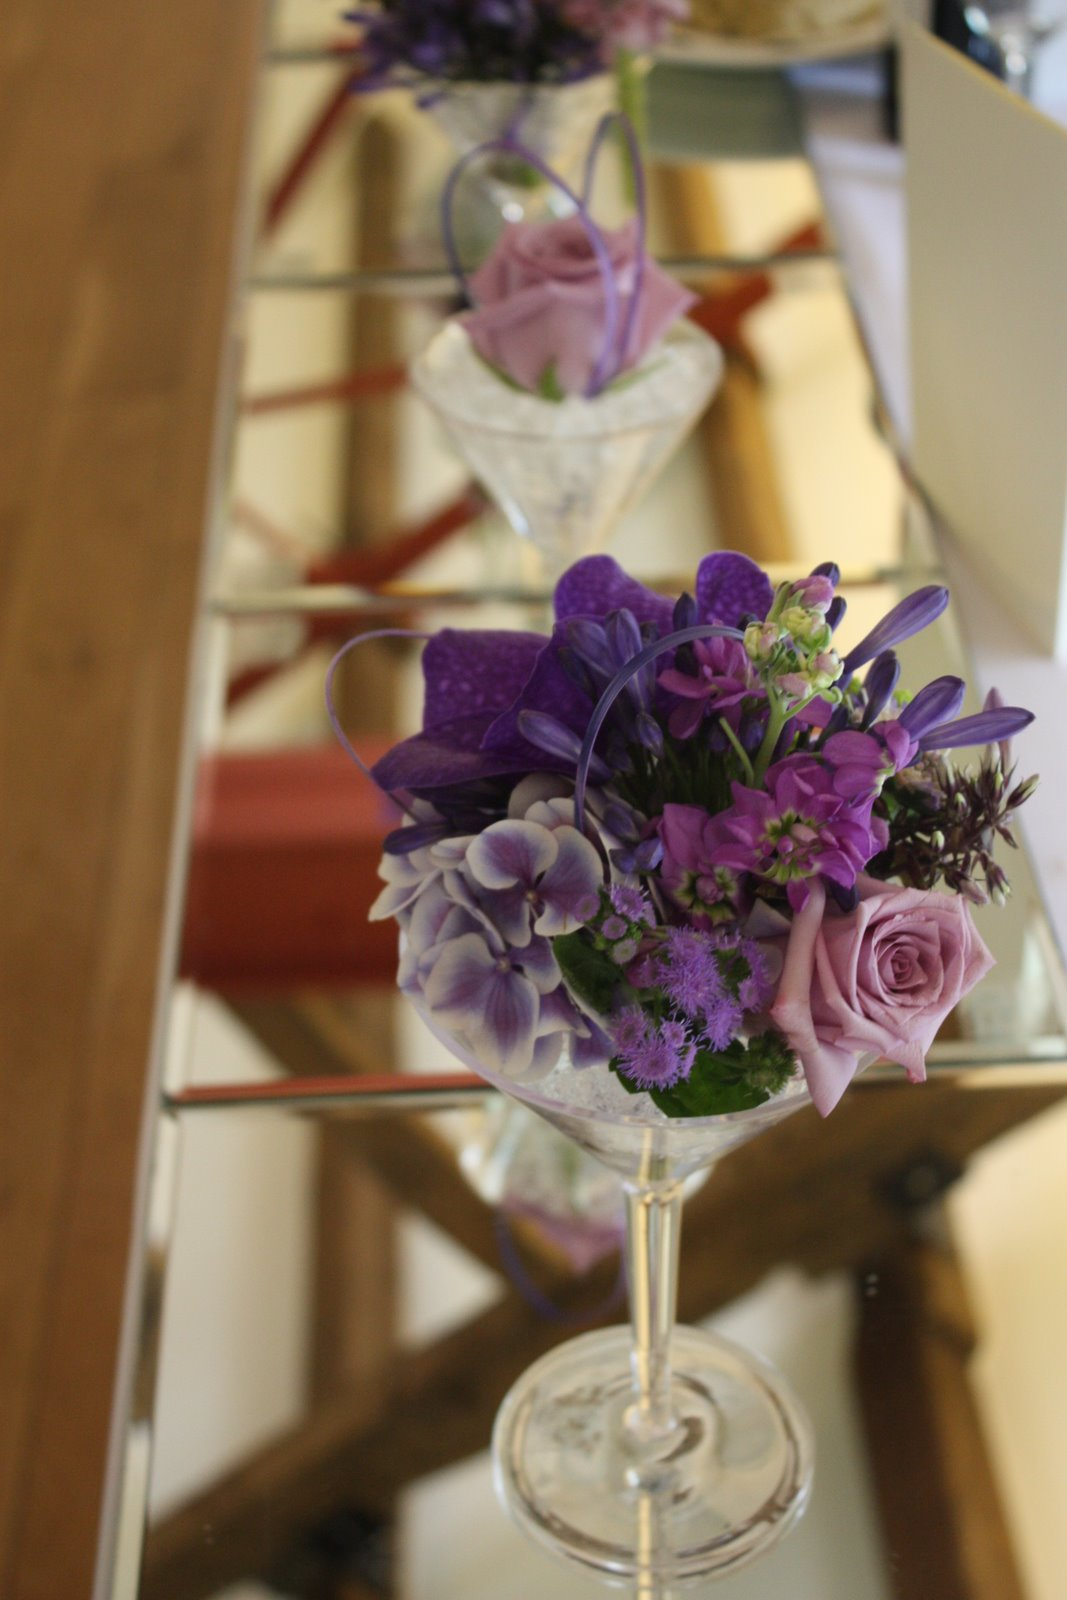 Flower Design Table Centrepieces: Martini Glass Top Table Design at ...